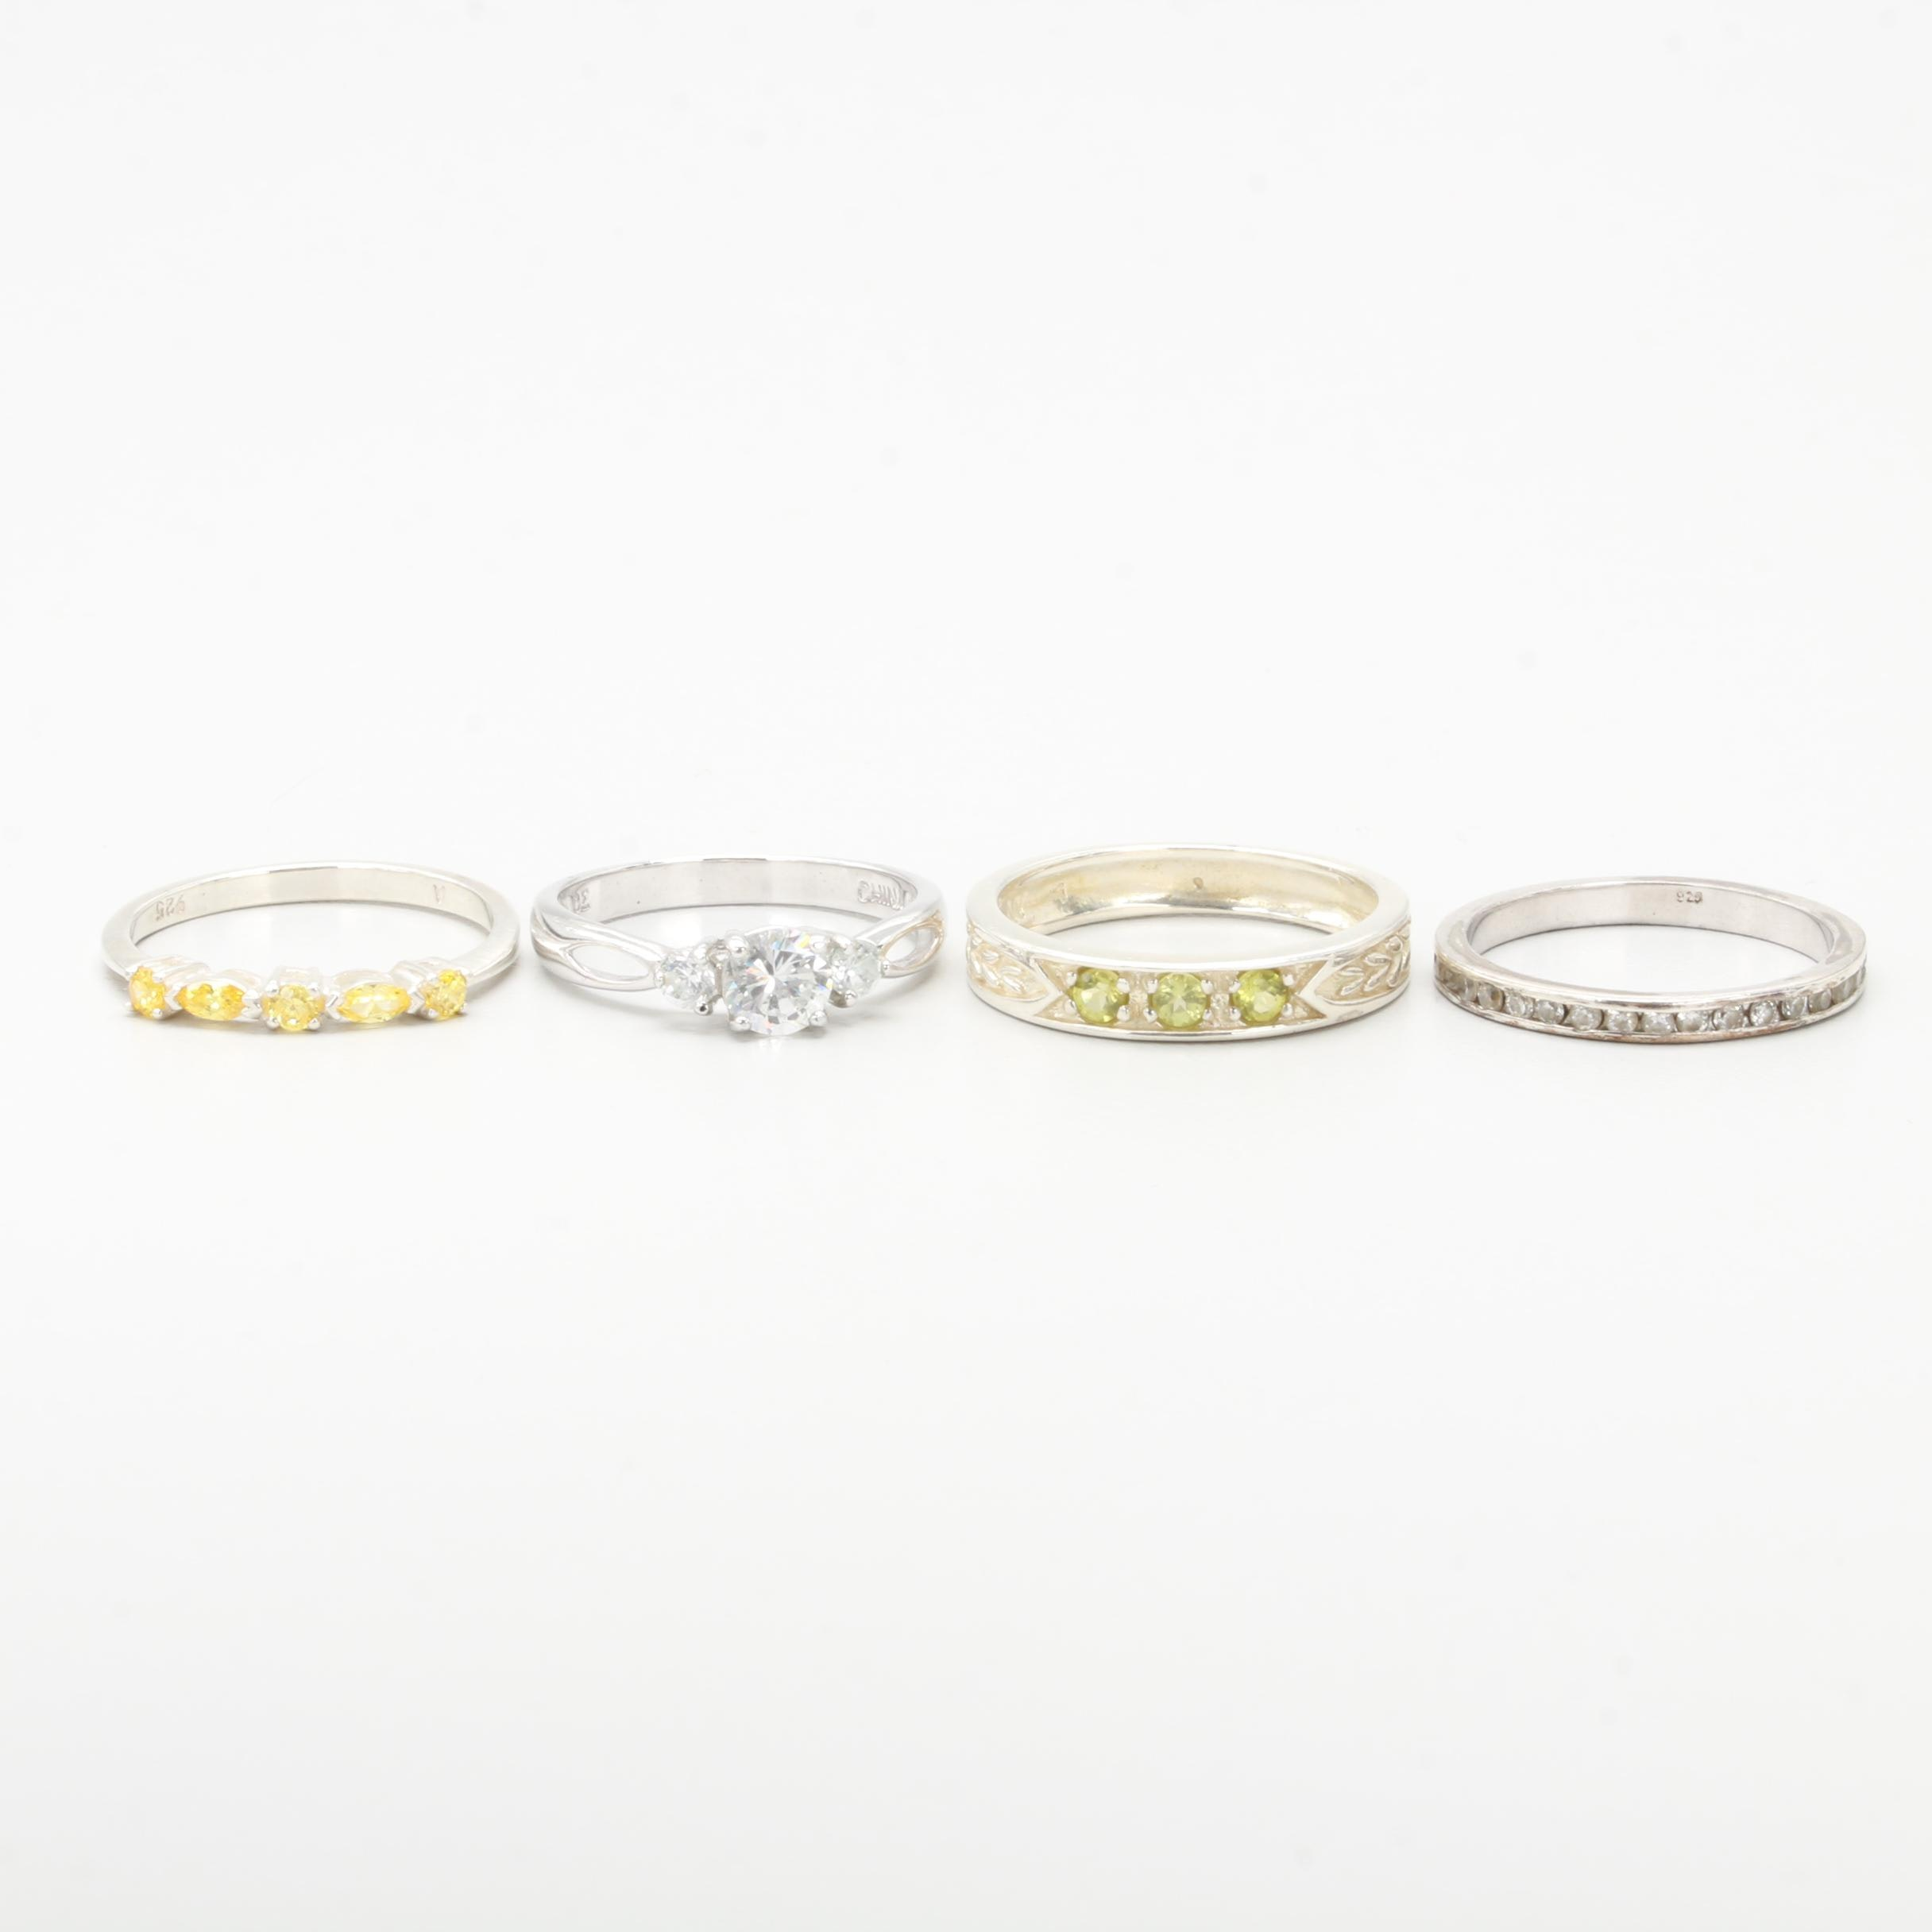 Sterling Silver Ring Selection Including Cubic Zirconia